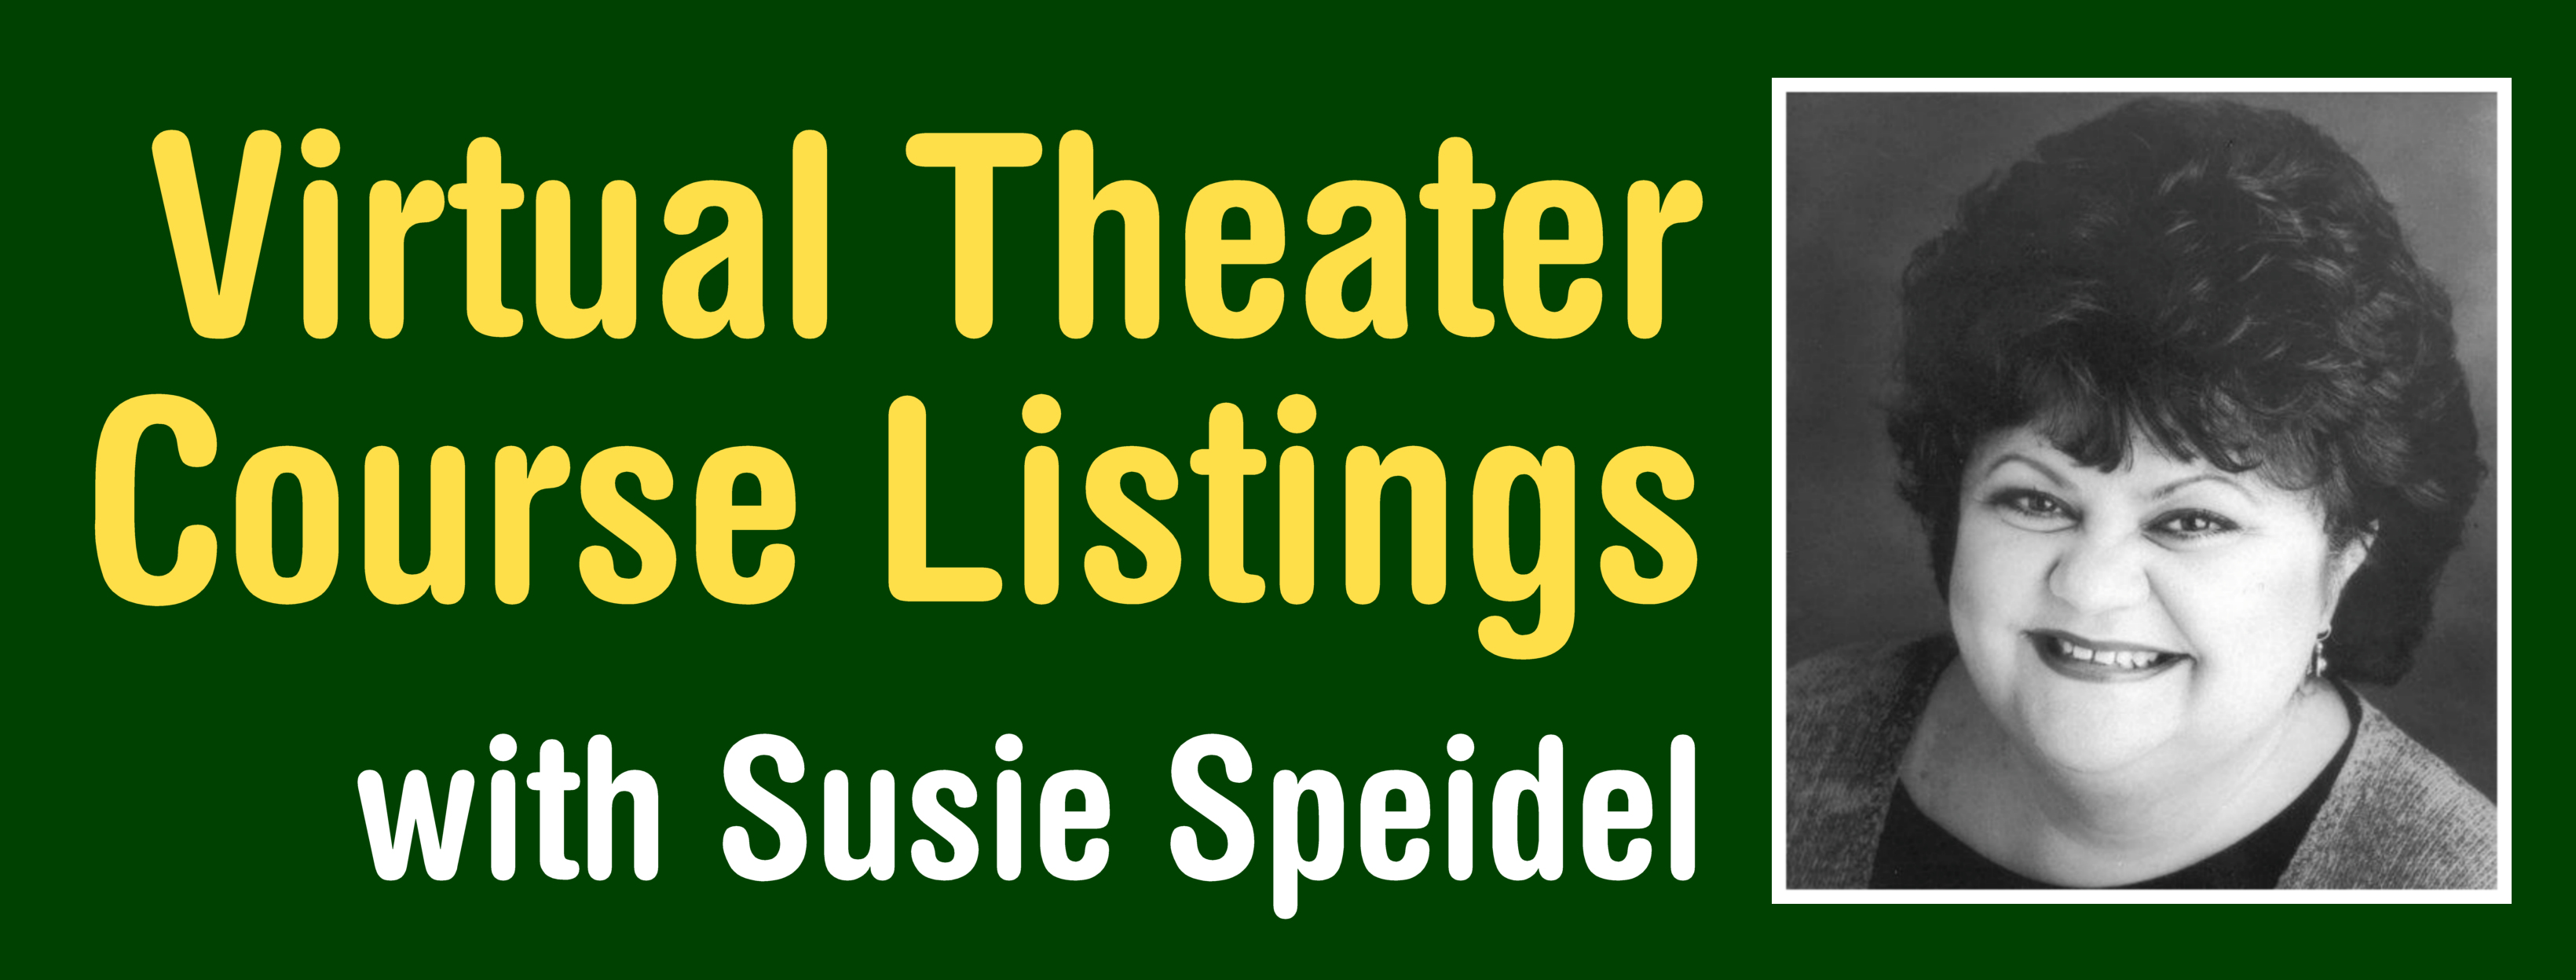 Summer Virtual Theater Course Listings